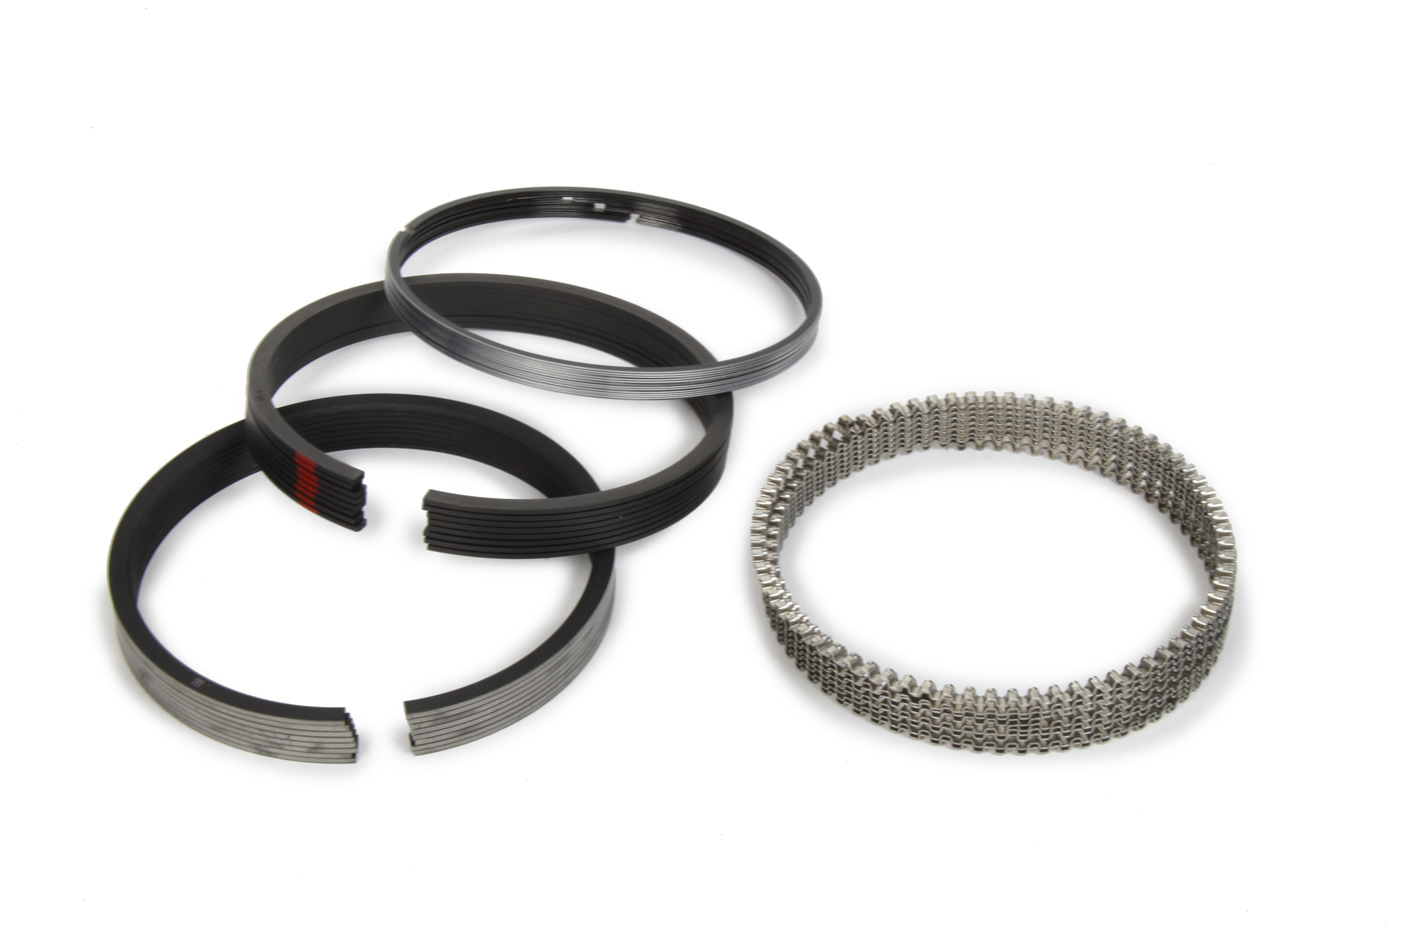 Michigan 77 315-0049.040 Piston Rings, 4.040 in Bore, 1/16 x 1/16 x 3.0 mm Thick, Low Tension, Plasma Moly, 8 Cylinder, Kit